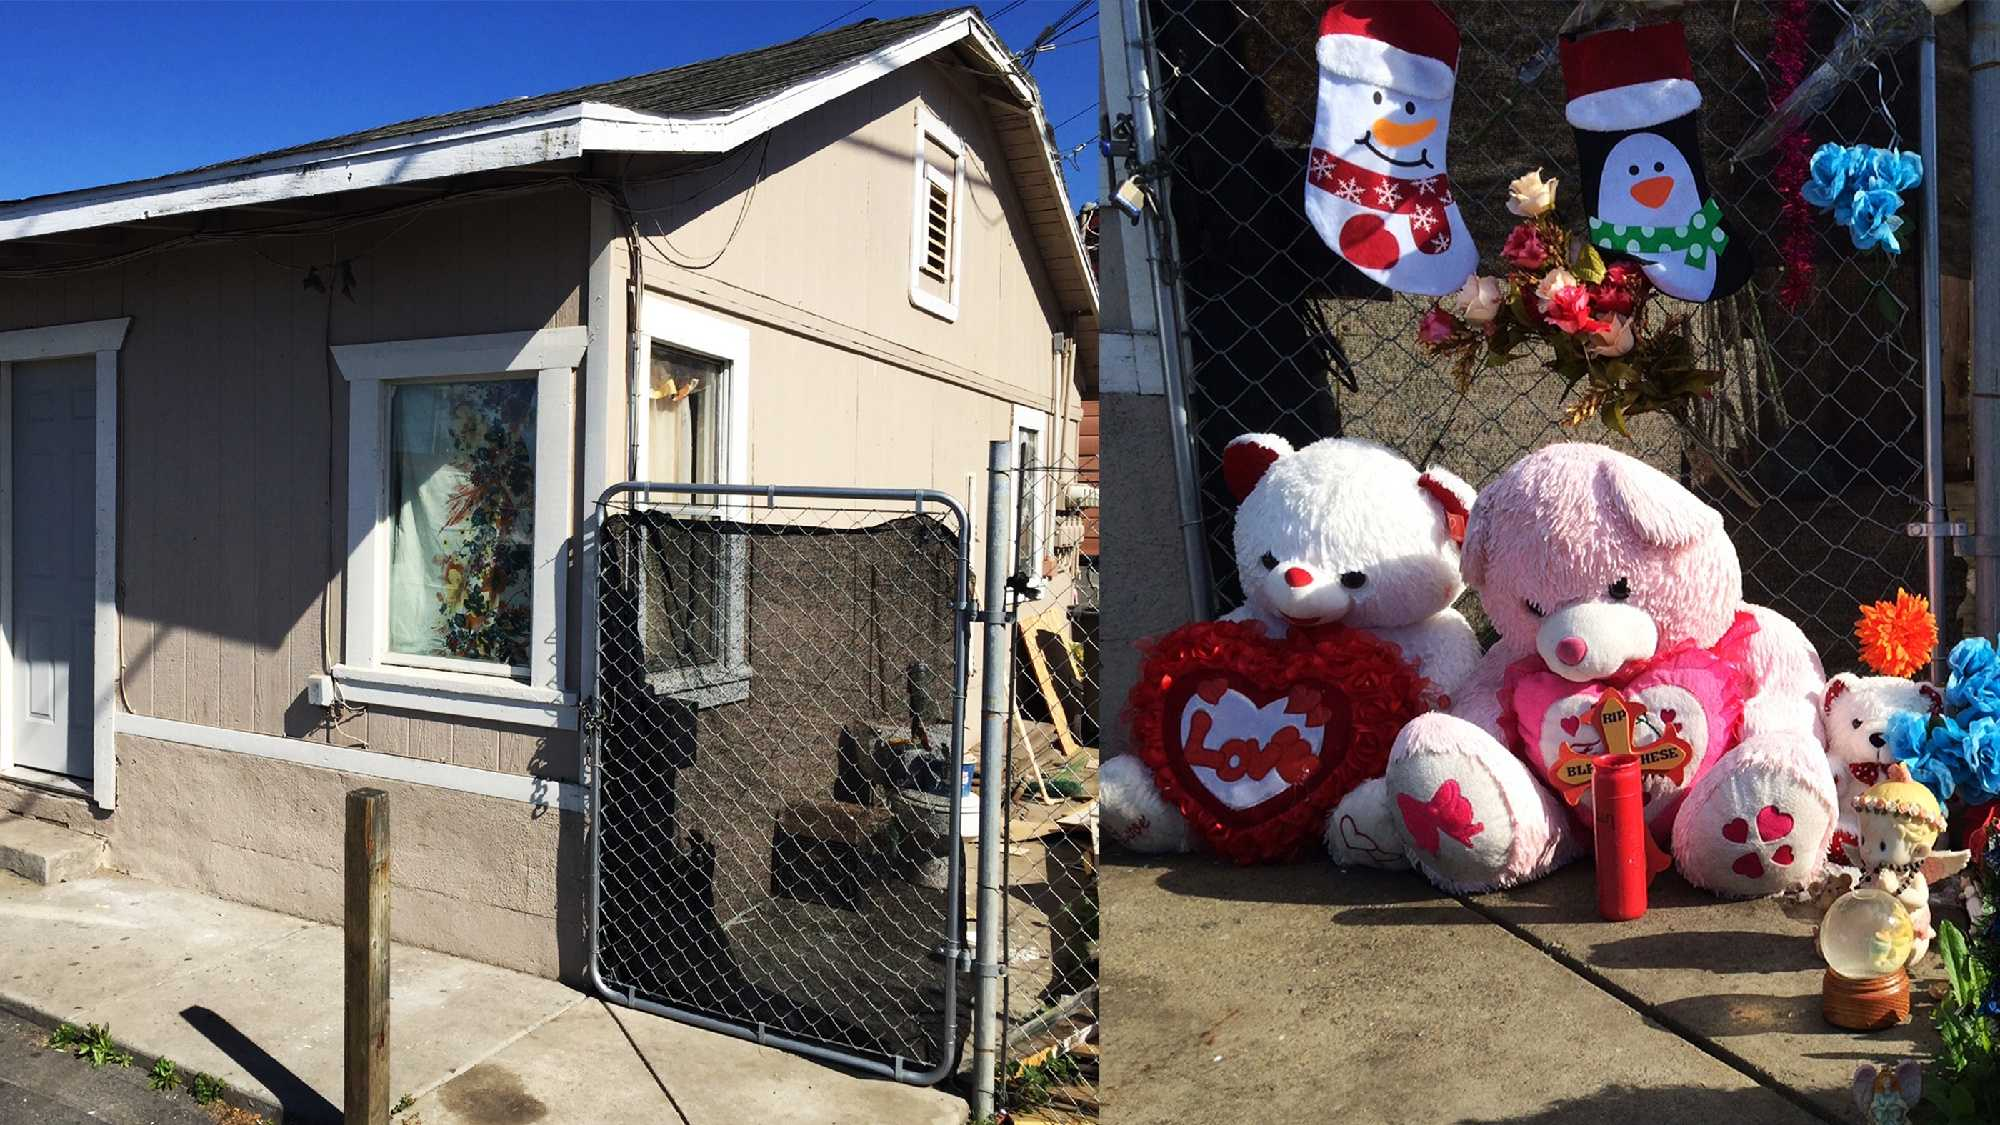 The memorial on the right was removed from the apartment on the left.